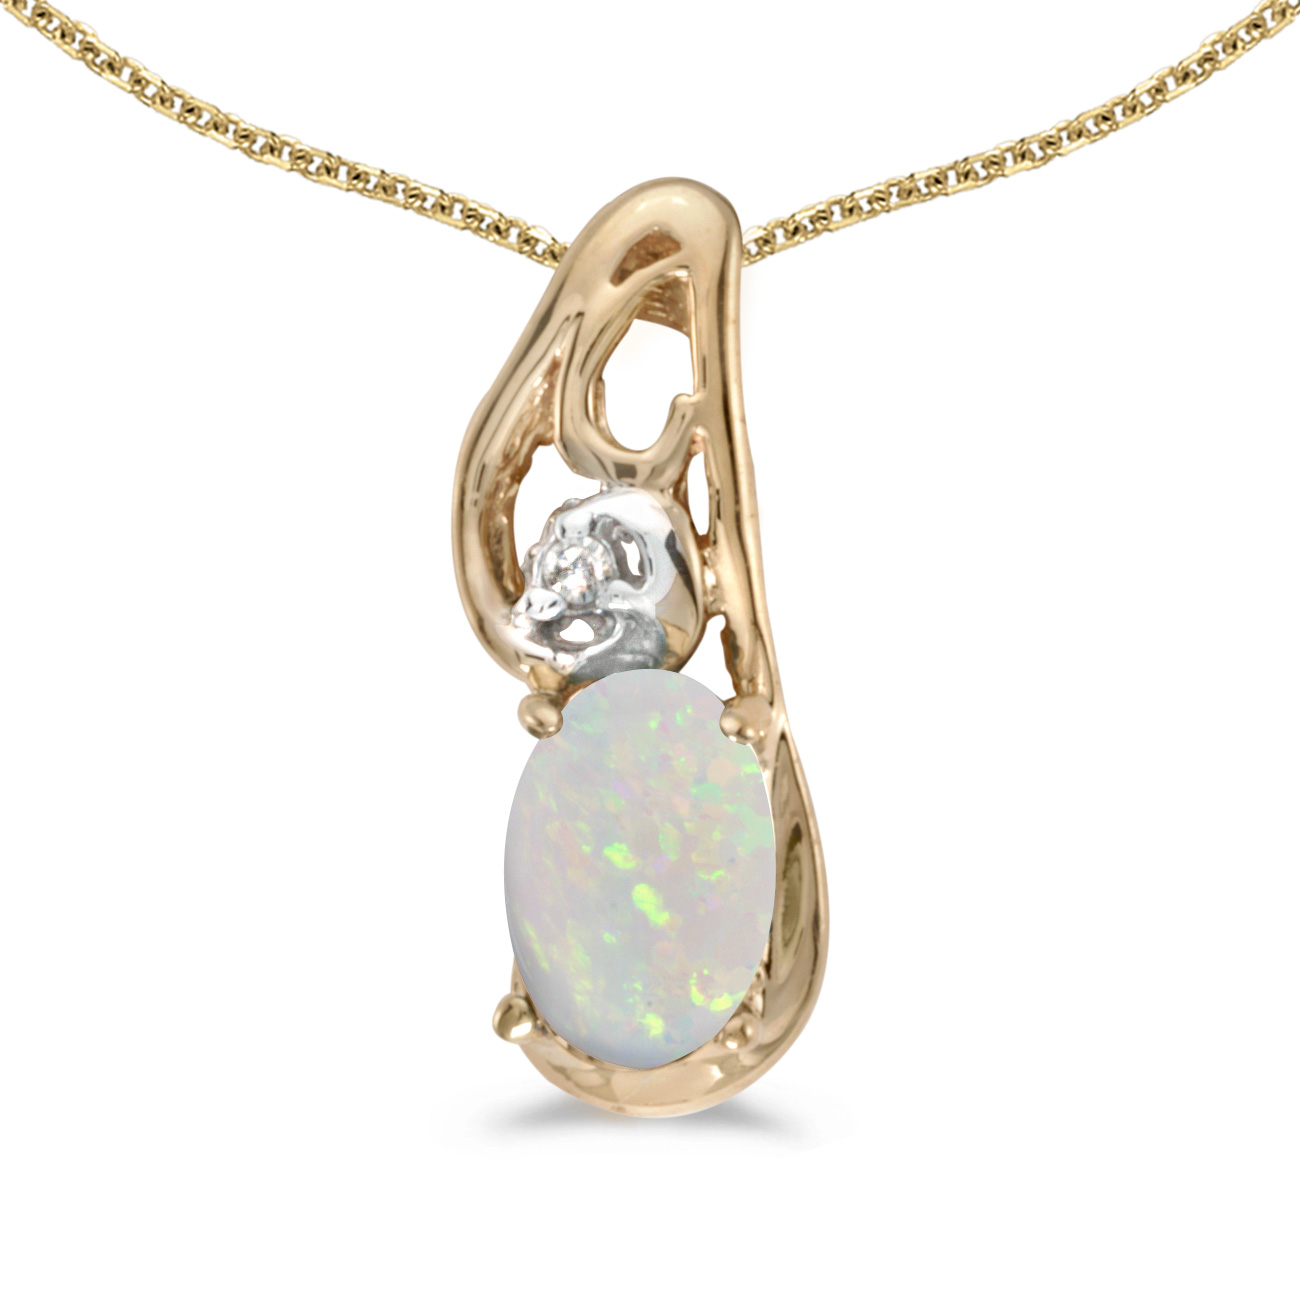 "10k Yellow Gold Oval Opal And Diamond Pendant with 18"" Chain"